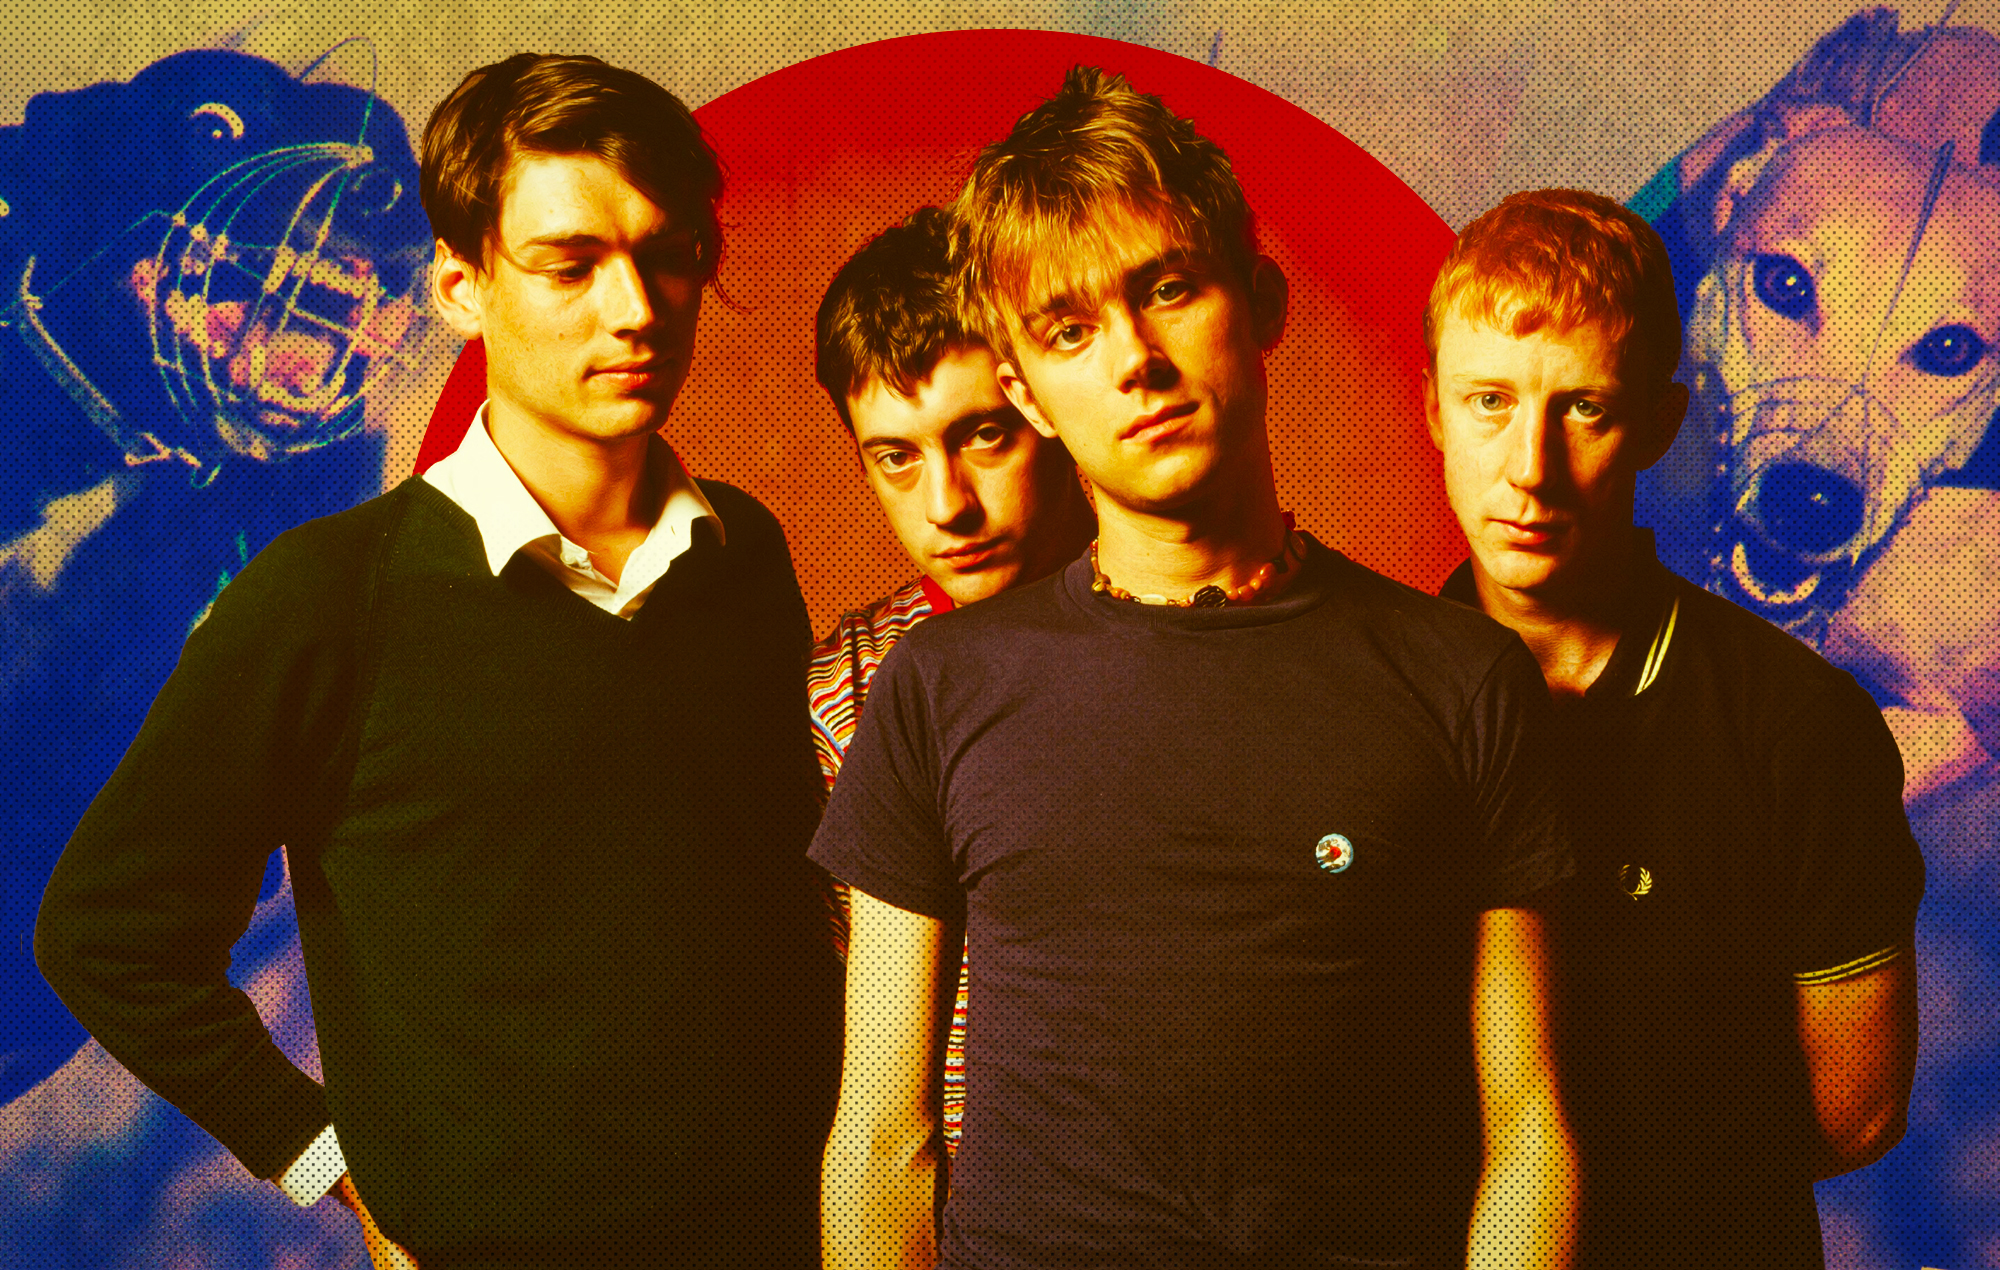 96f336b7a 'Parklife' at 25: the full story of Blur's classic album, as told by the  people who were there